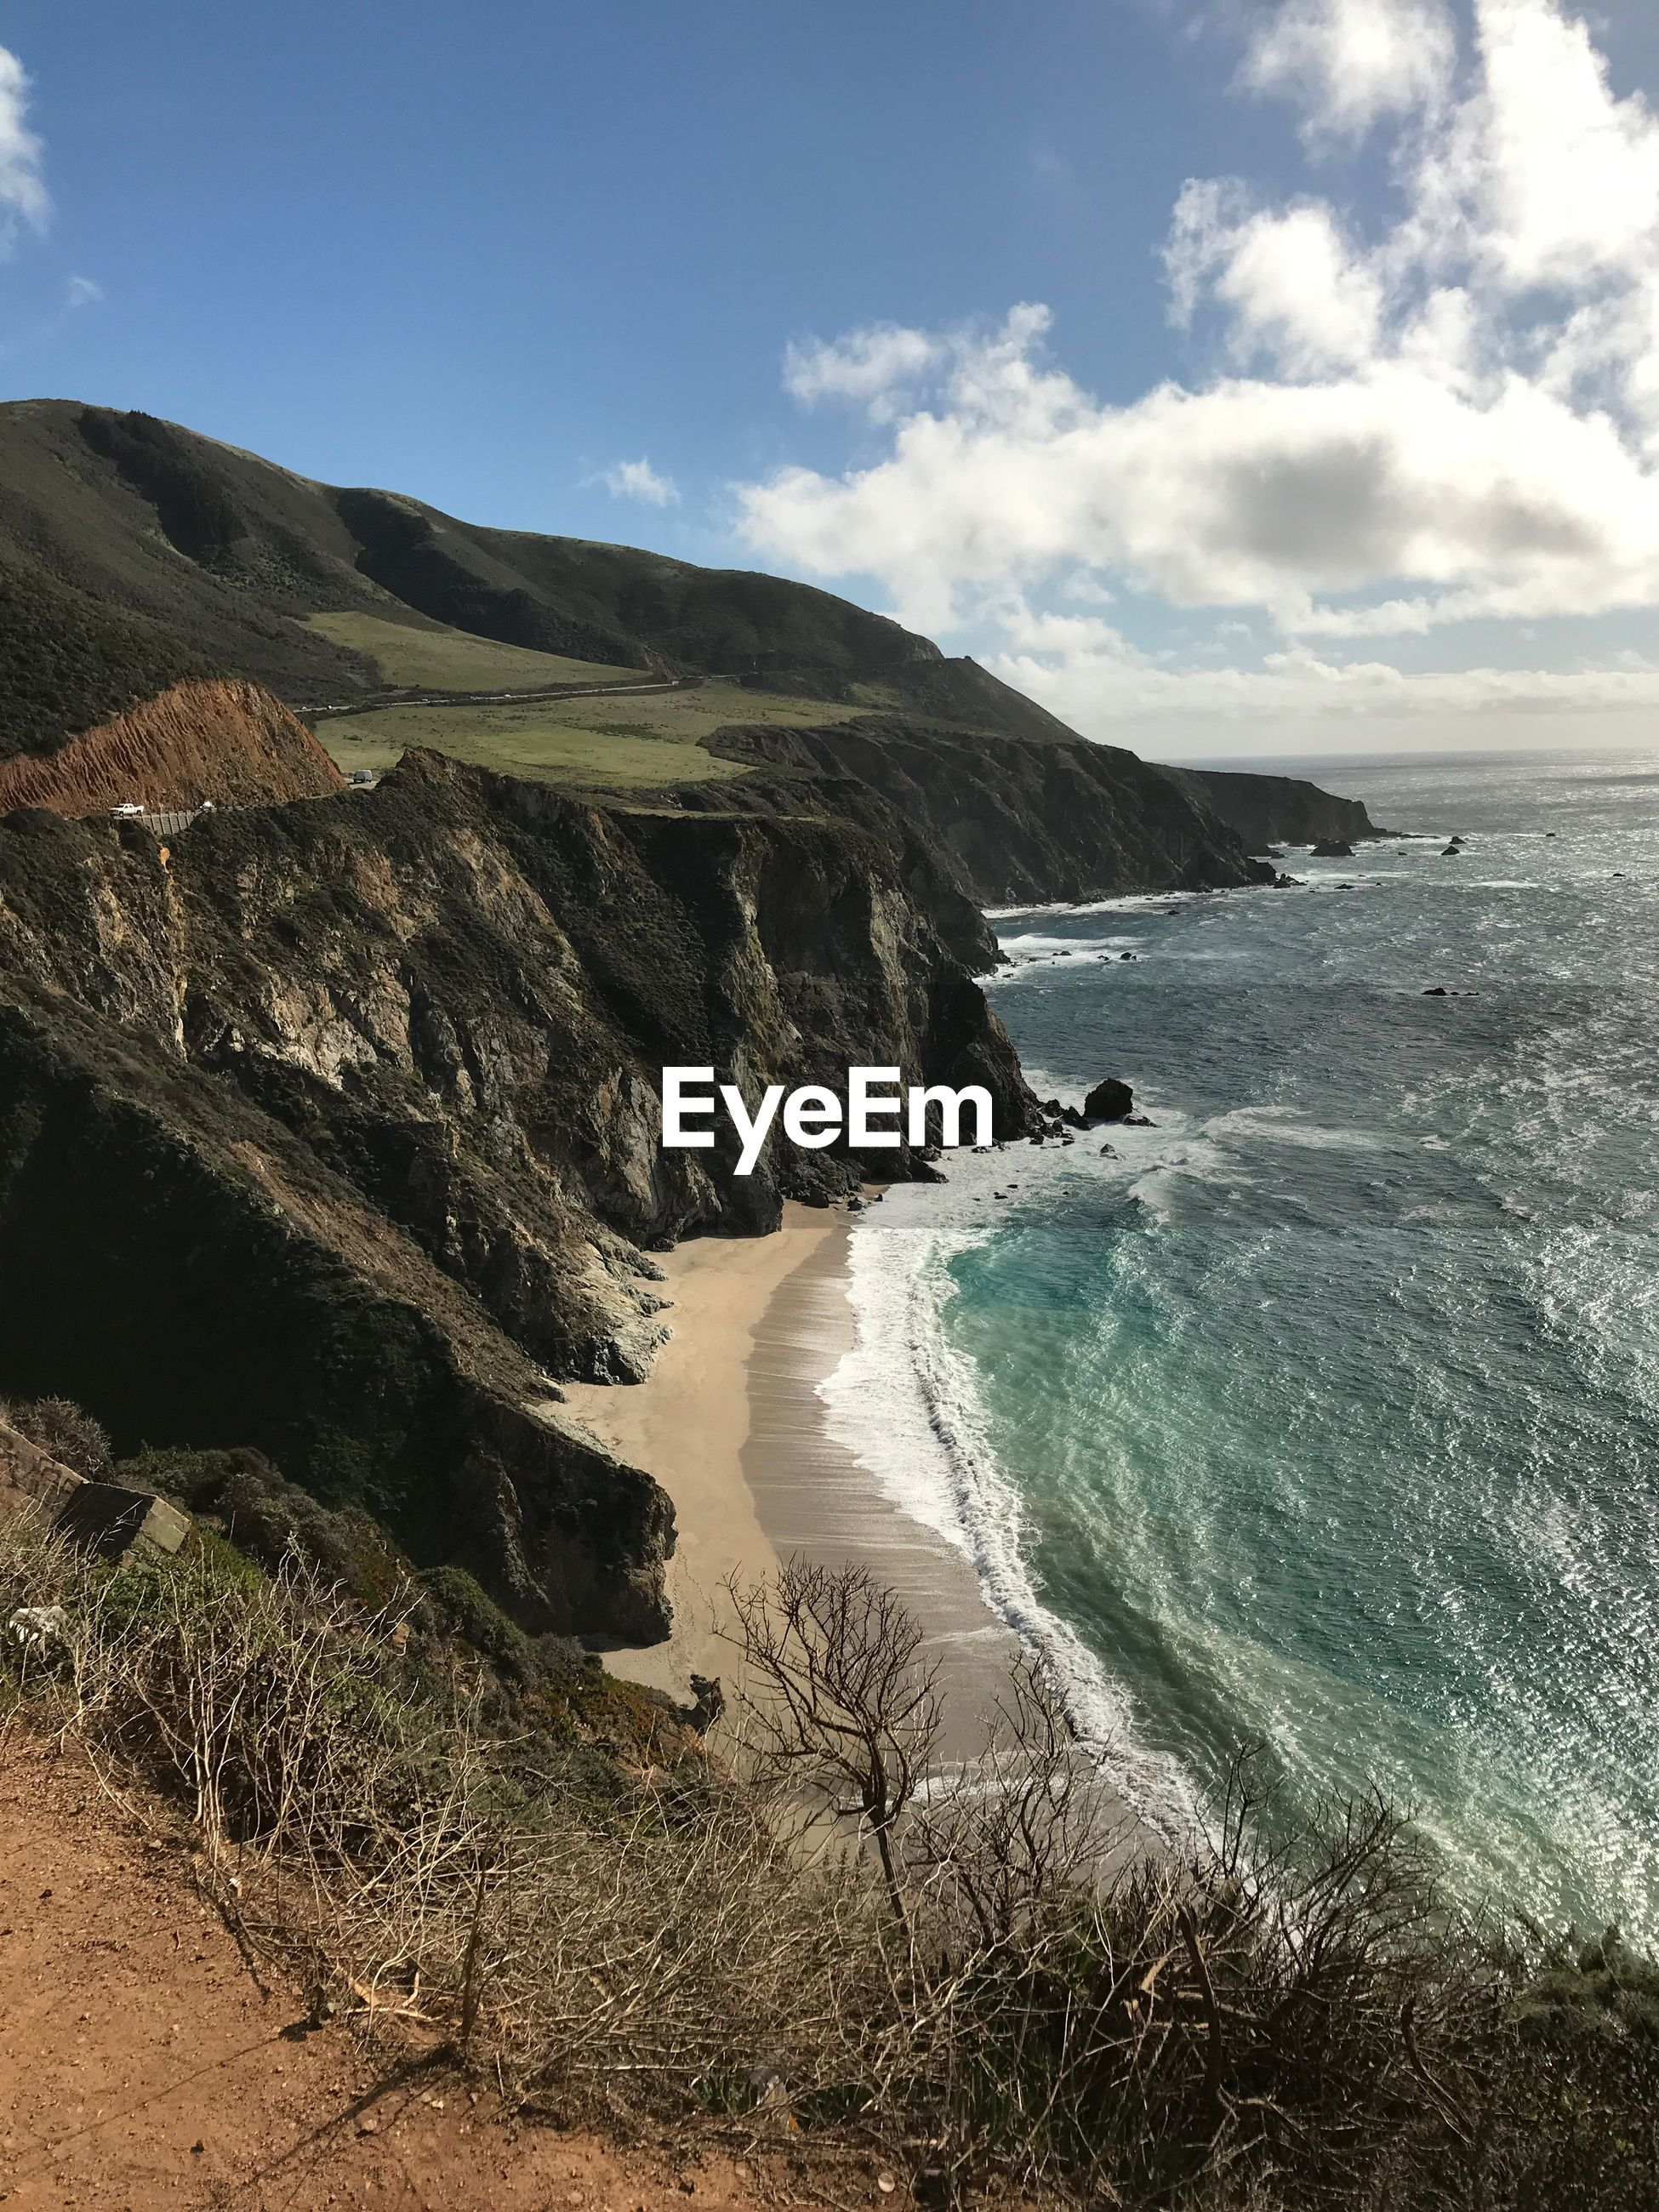 SCENIC VIEW OF BEACH AND MOUNTAIN AGAINST SKY